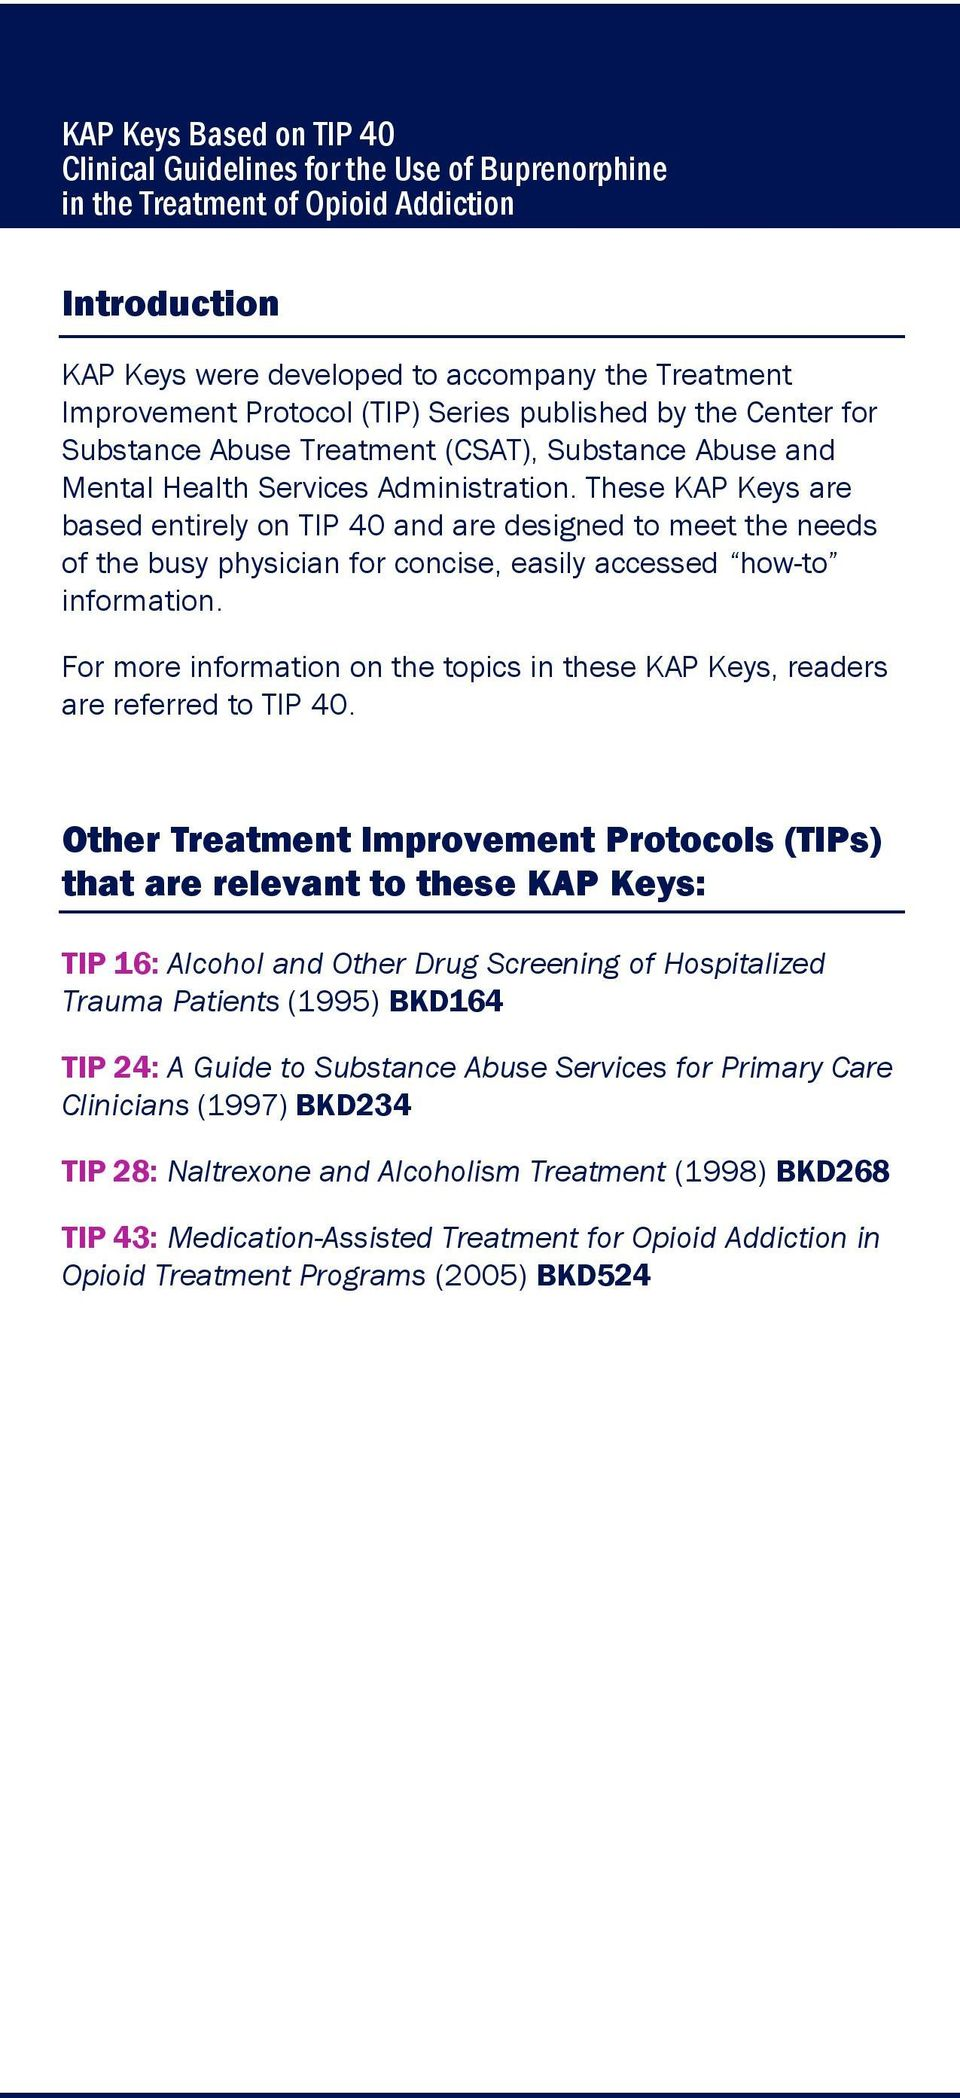 For more information on the topics in these KAP Keys, readers are referred to TIP 40.